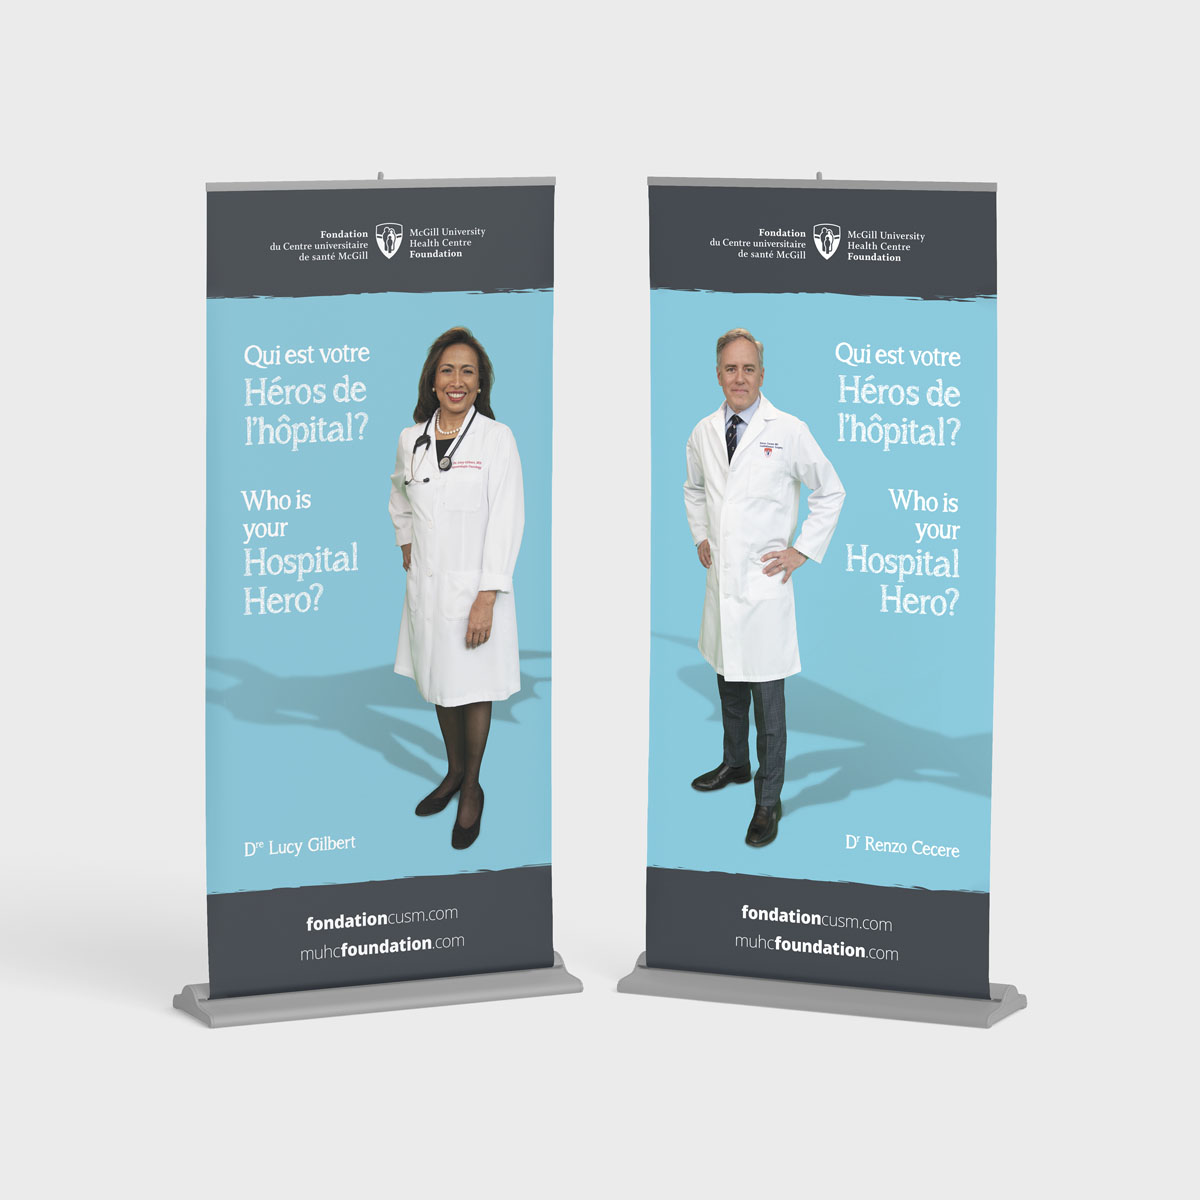 Hospital Hero banners for the MUHC Foundation